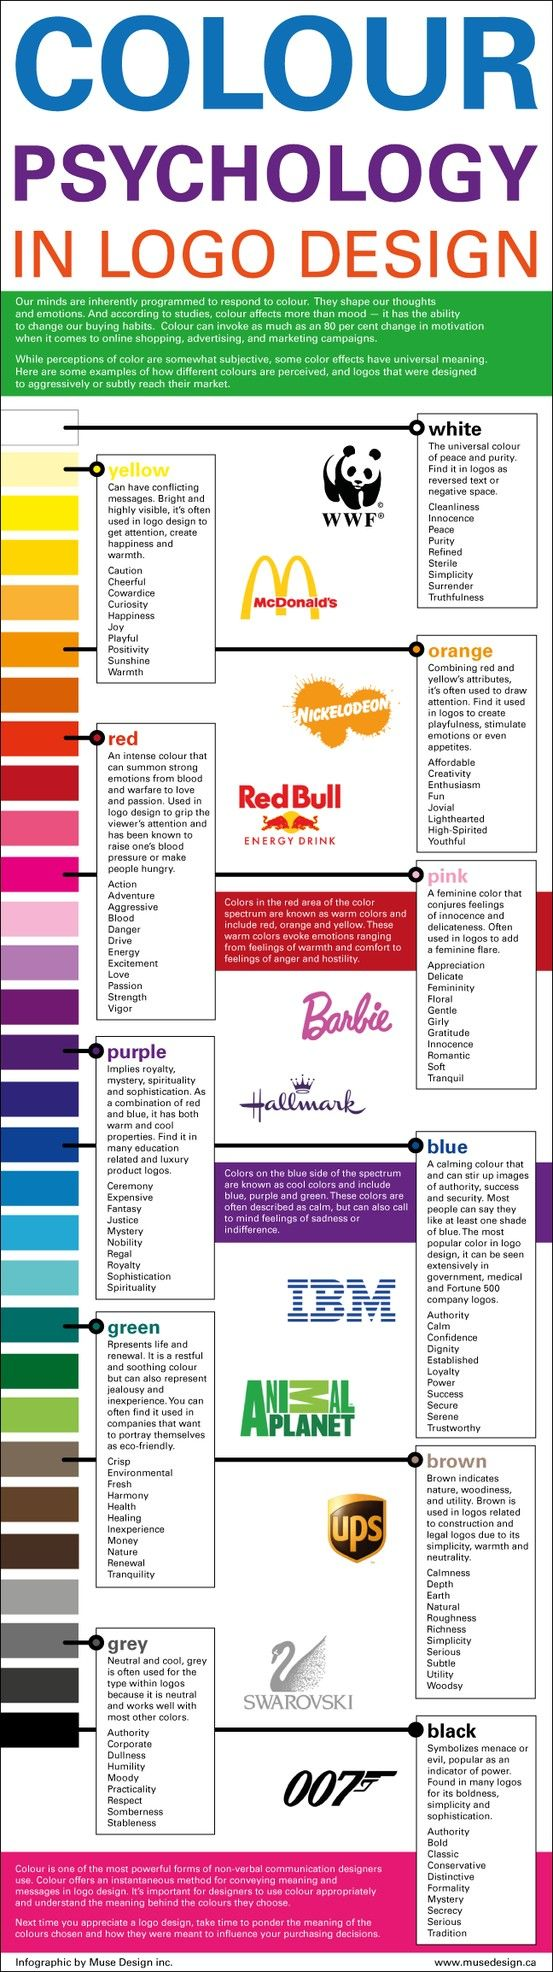 Color Psychology in Logo Design #Infographic #design #business